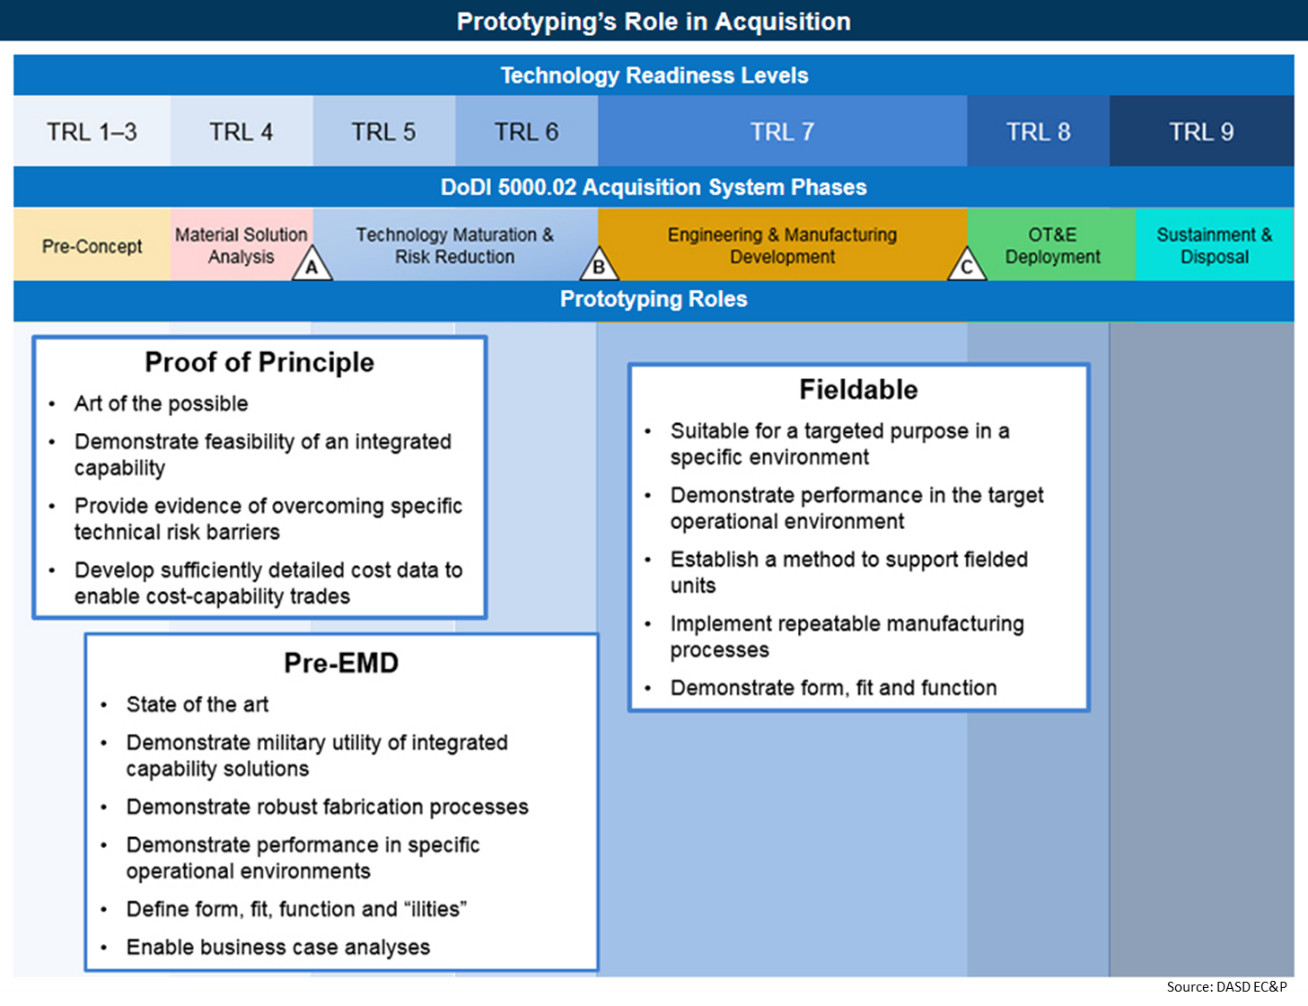 Figure 1: Prototyping's Role in DoD Acquisition (Source: Deputy Assistant Secretary of Defense EC&P).